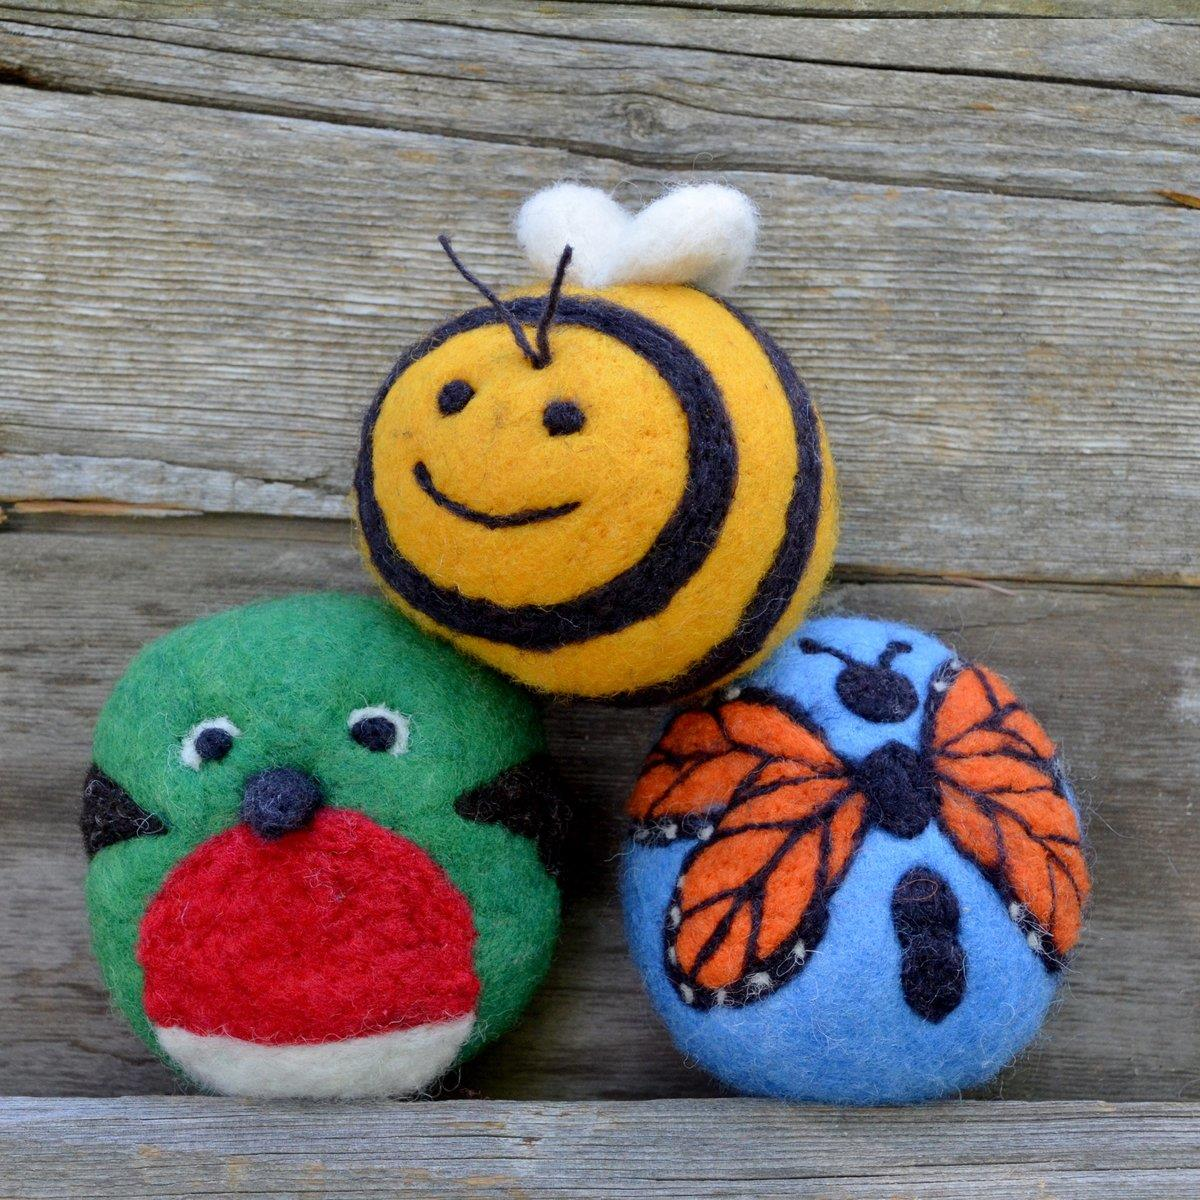 Splat & Co The Pollinators Dryer Balls